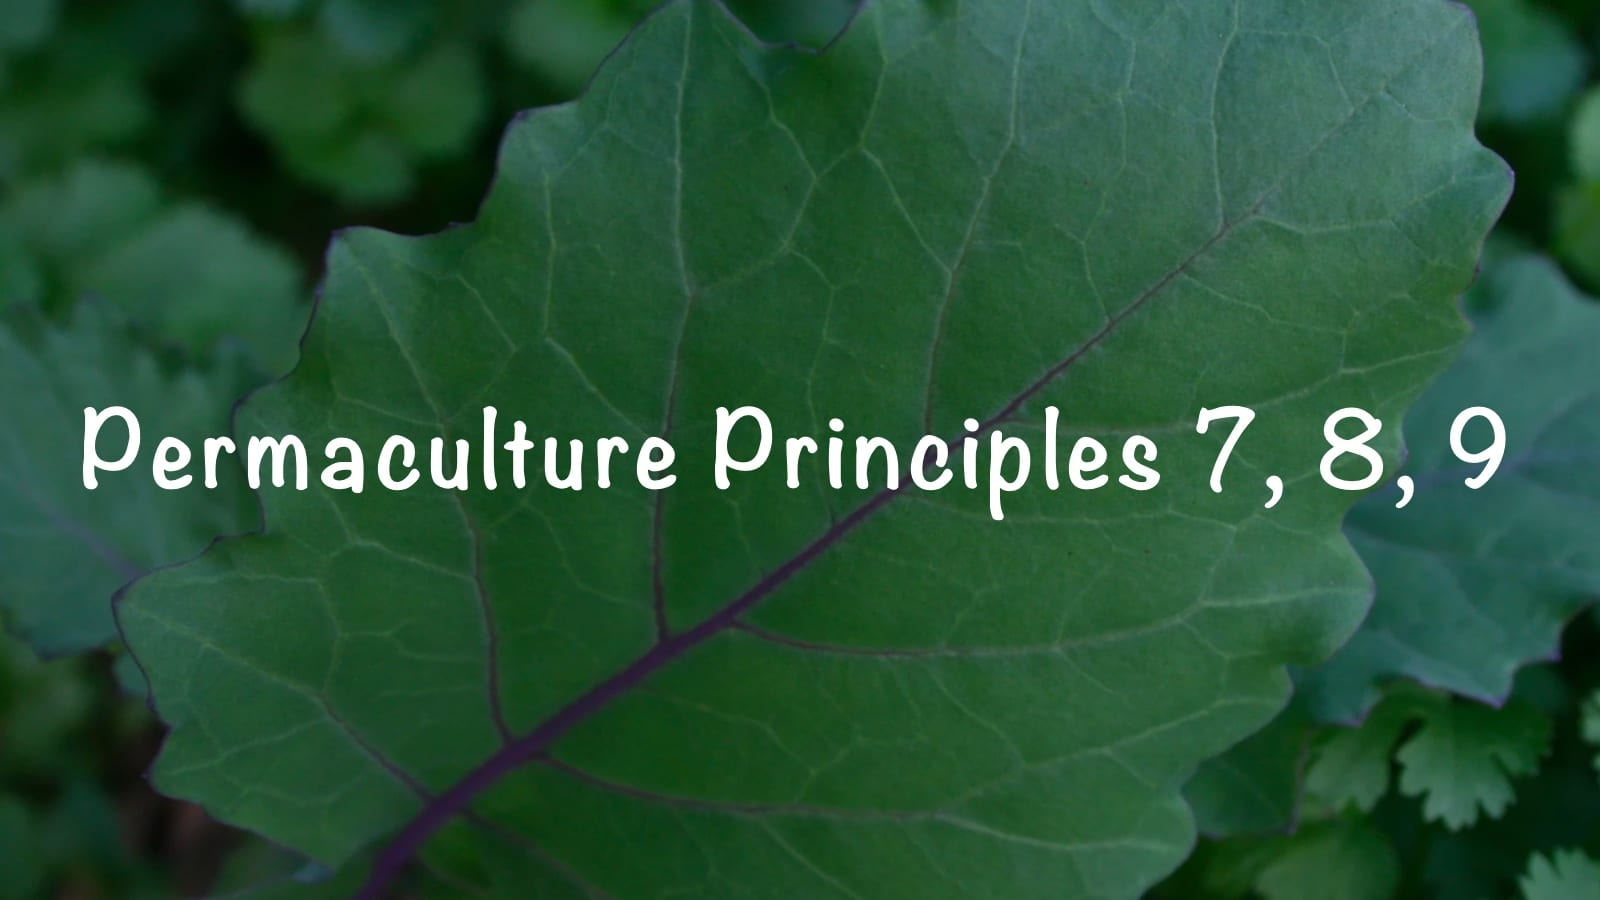 Permaculture Principles – 7, 8, 9